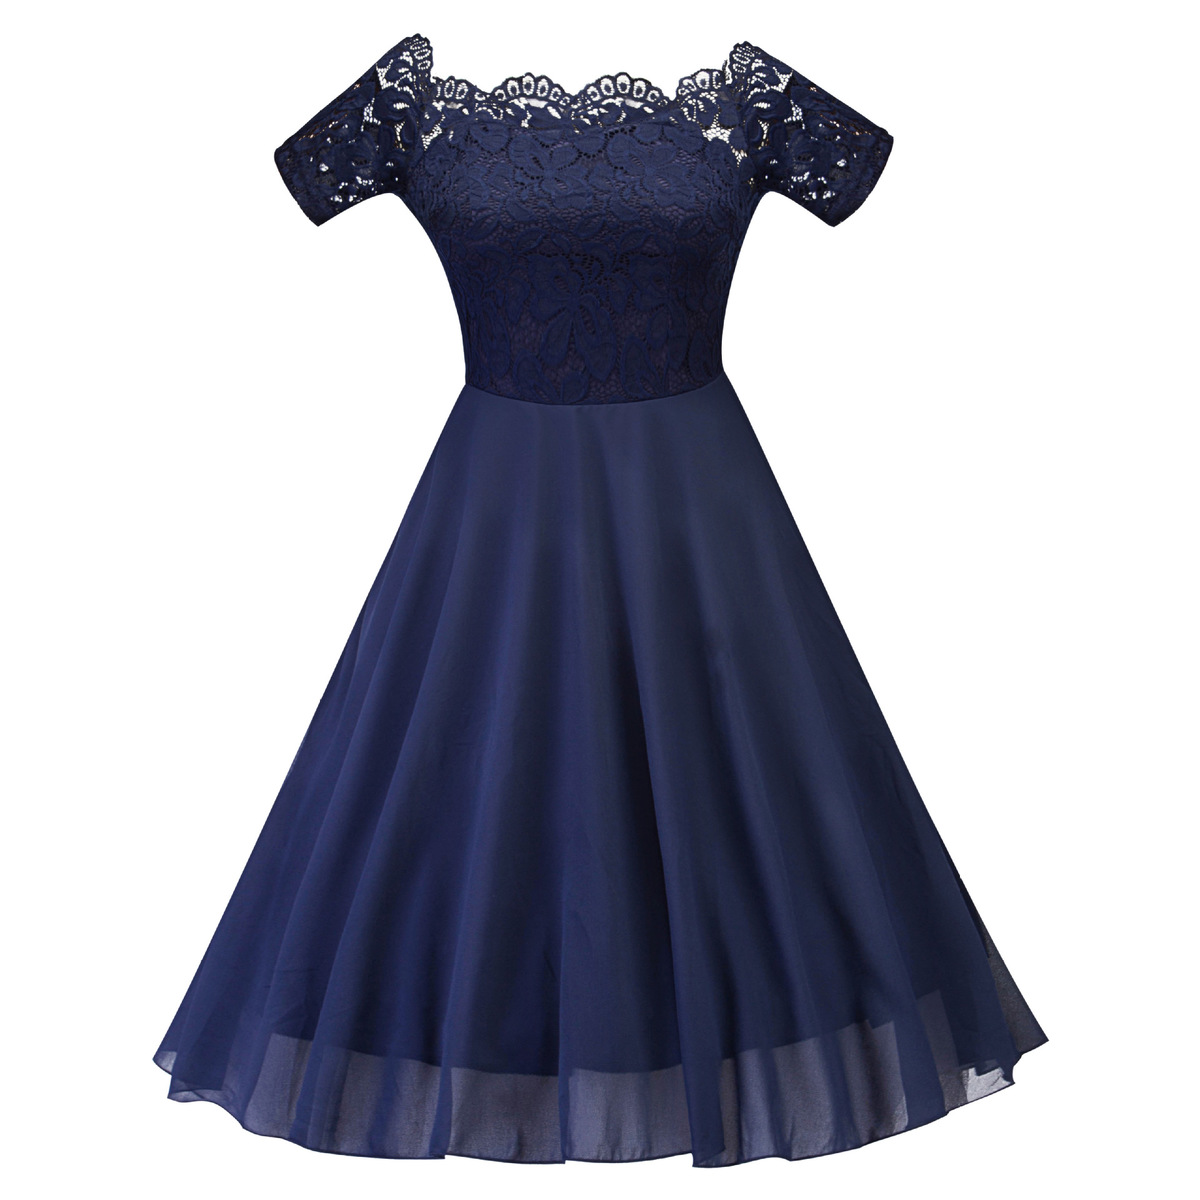 04b9884ee8 Short Party Dresses Navy Blue Chiffon Lace Short Sleeves Homecoming Dresses  New Arrival Girls A-